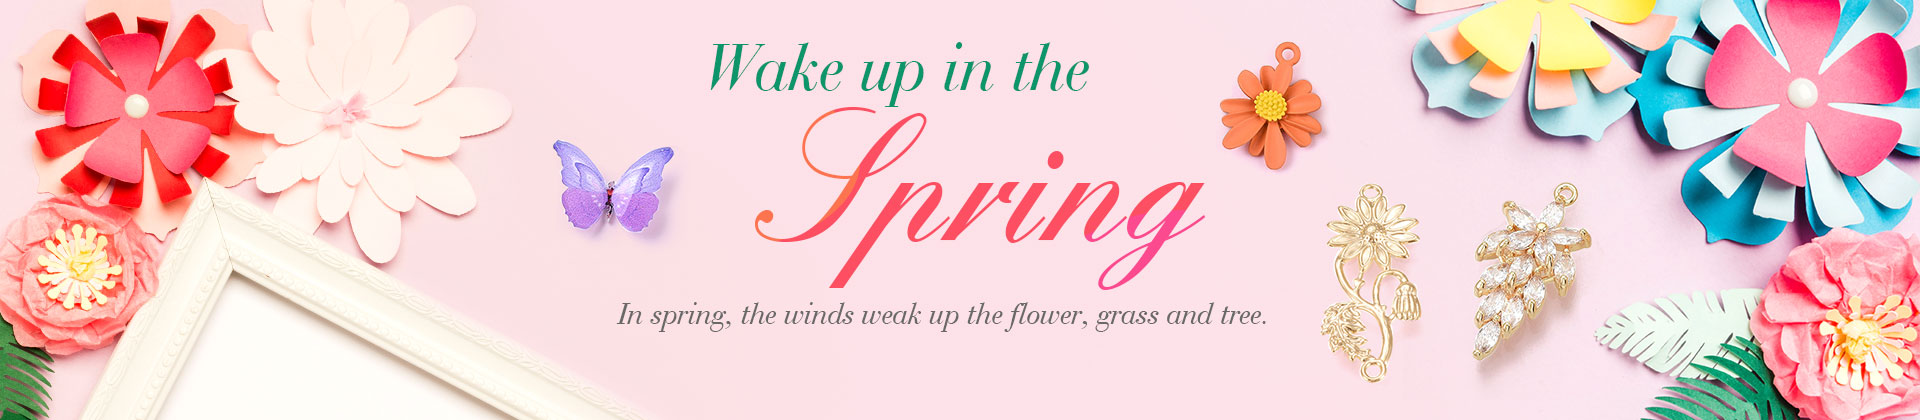 Wake up in the Spring